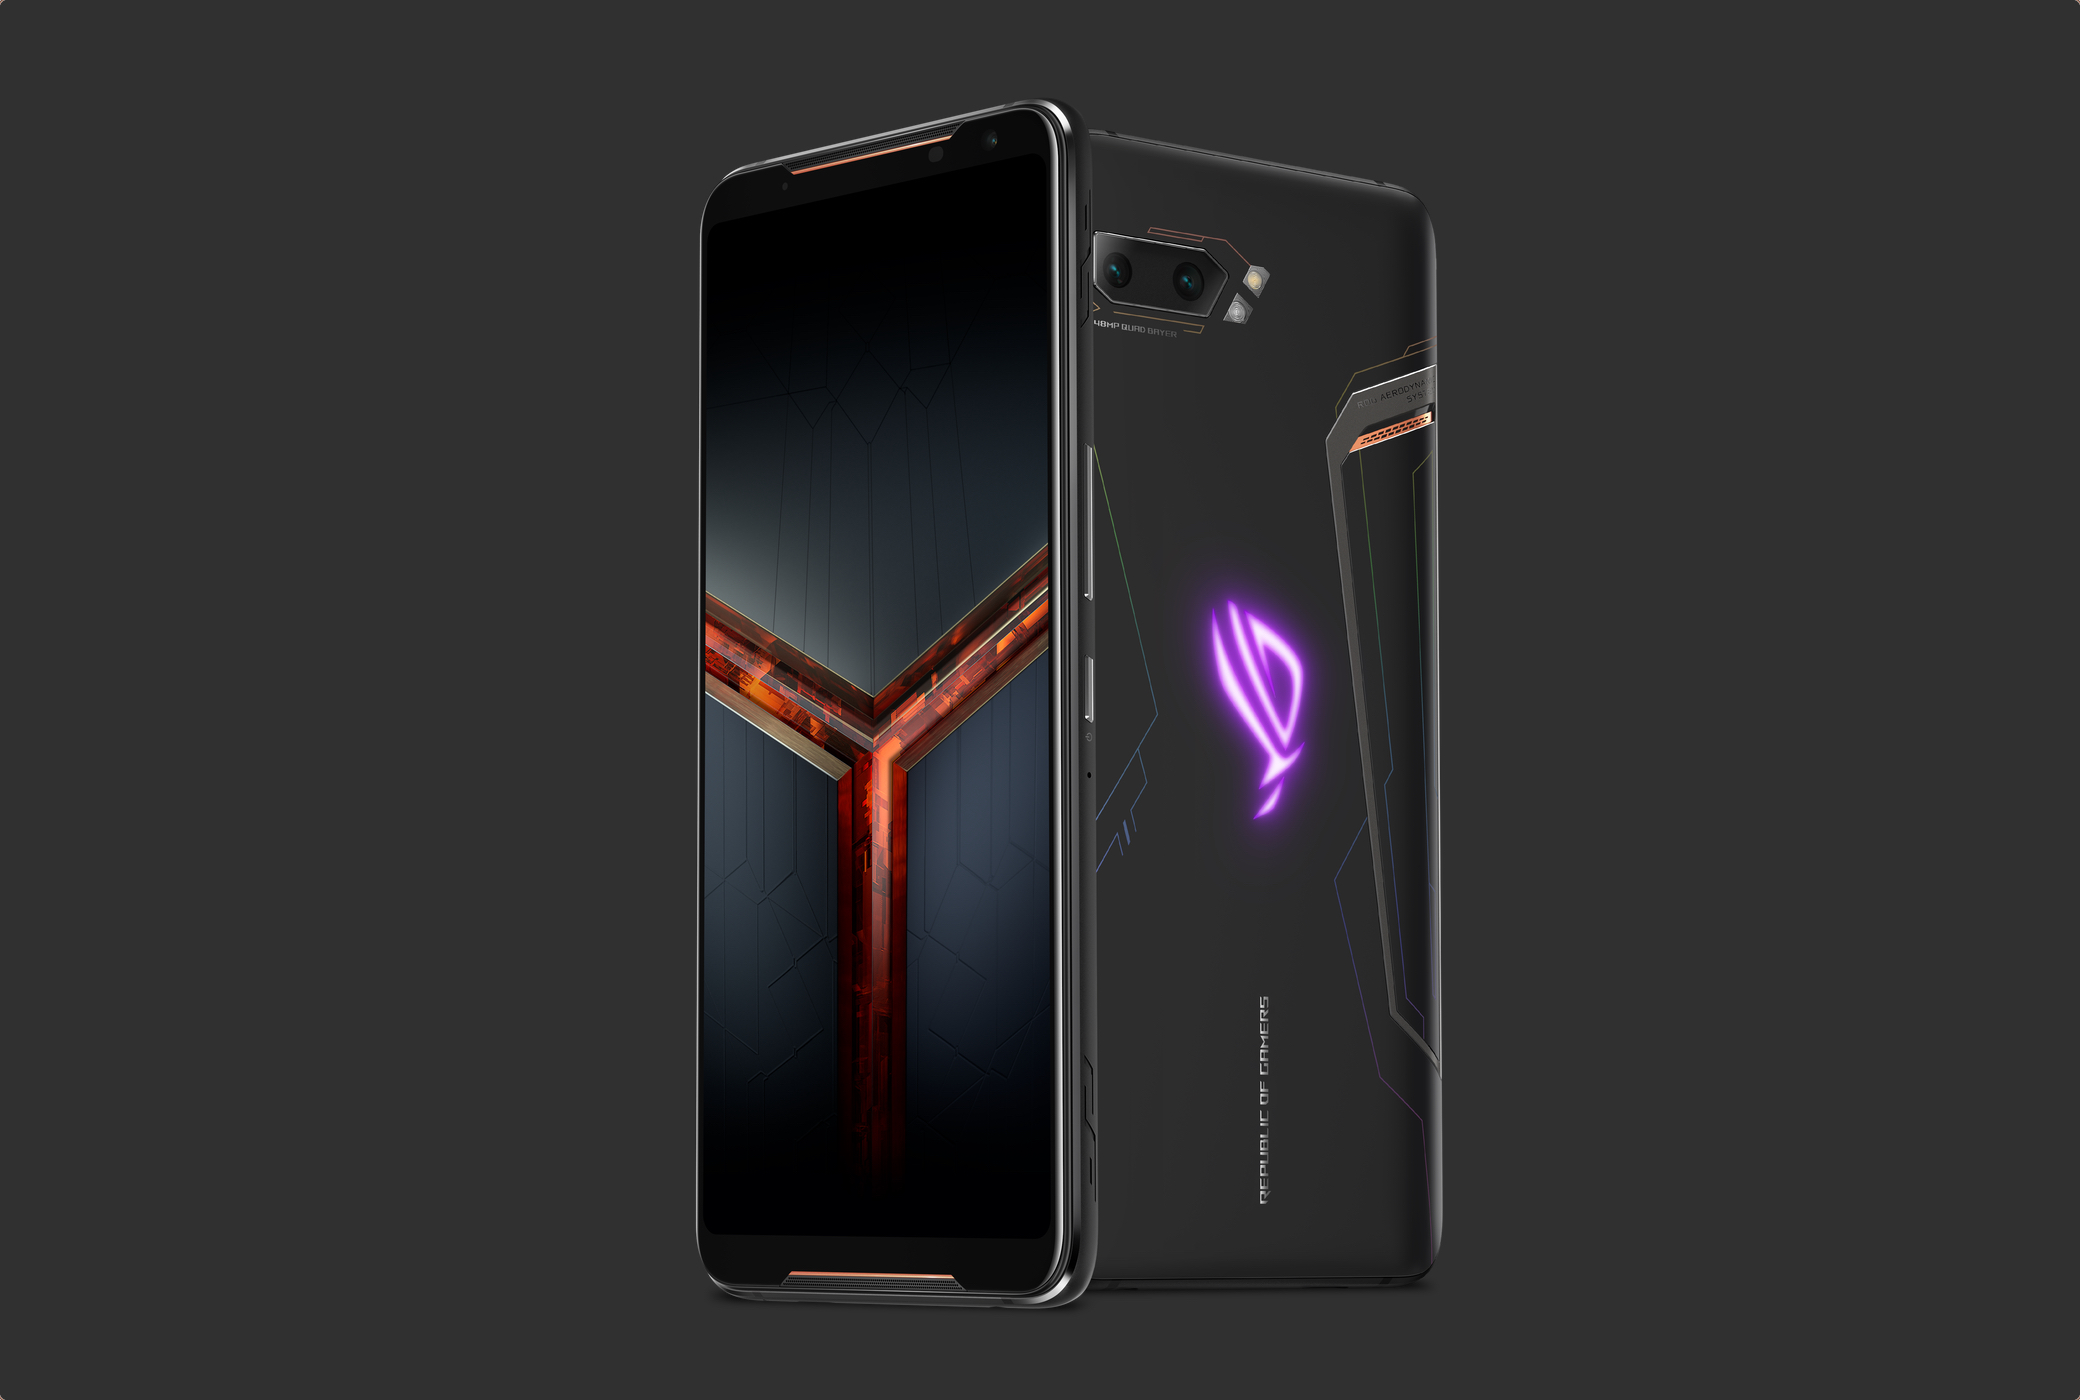 ROG1 - Asus unveils the spec packed Rog Phone II Ultimate Edition at IFA 2019